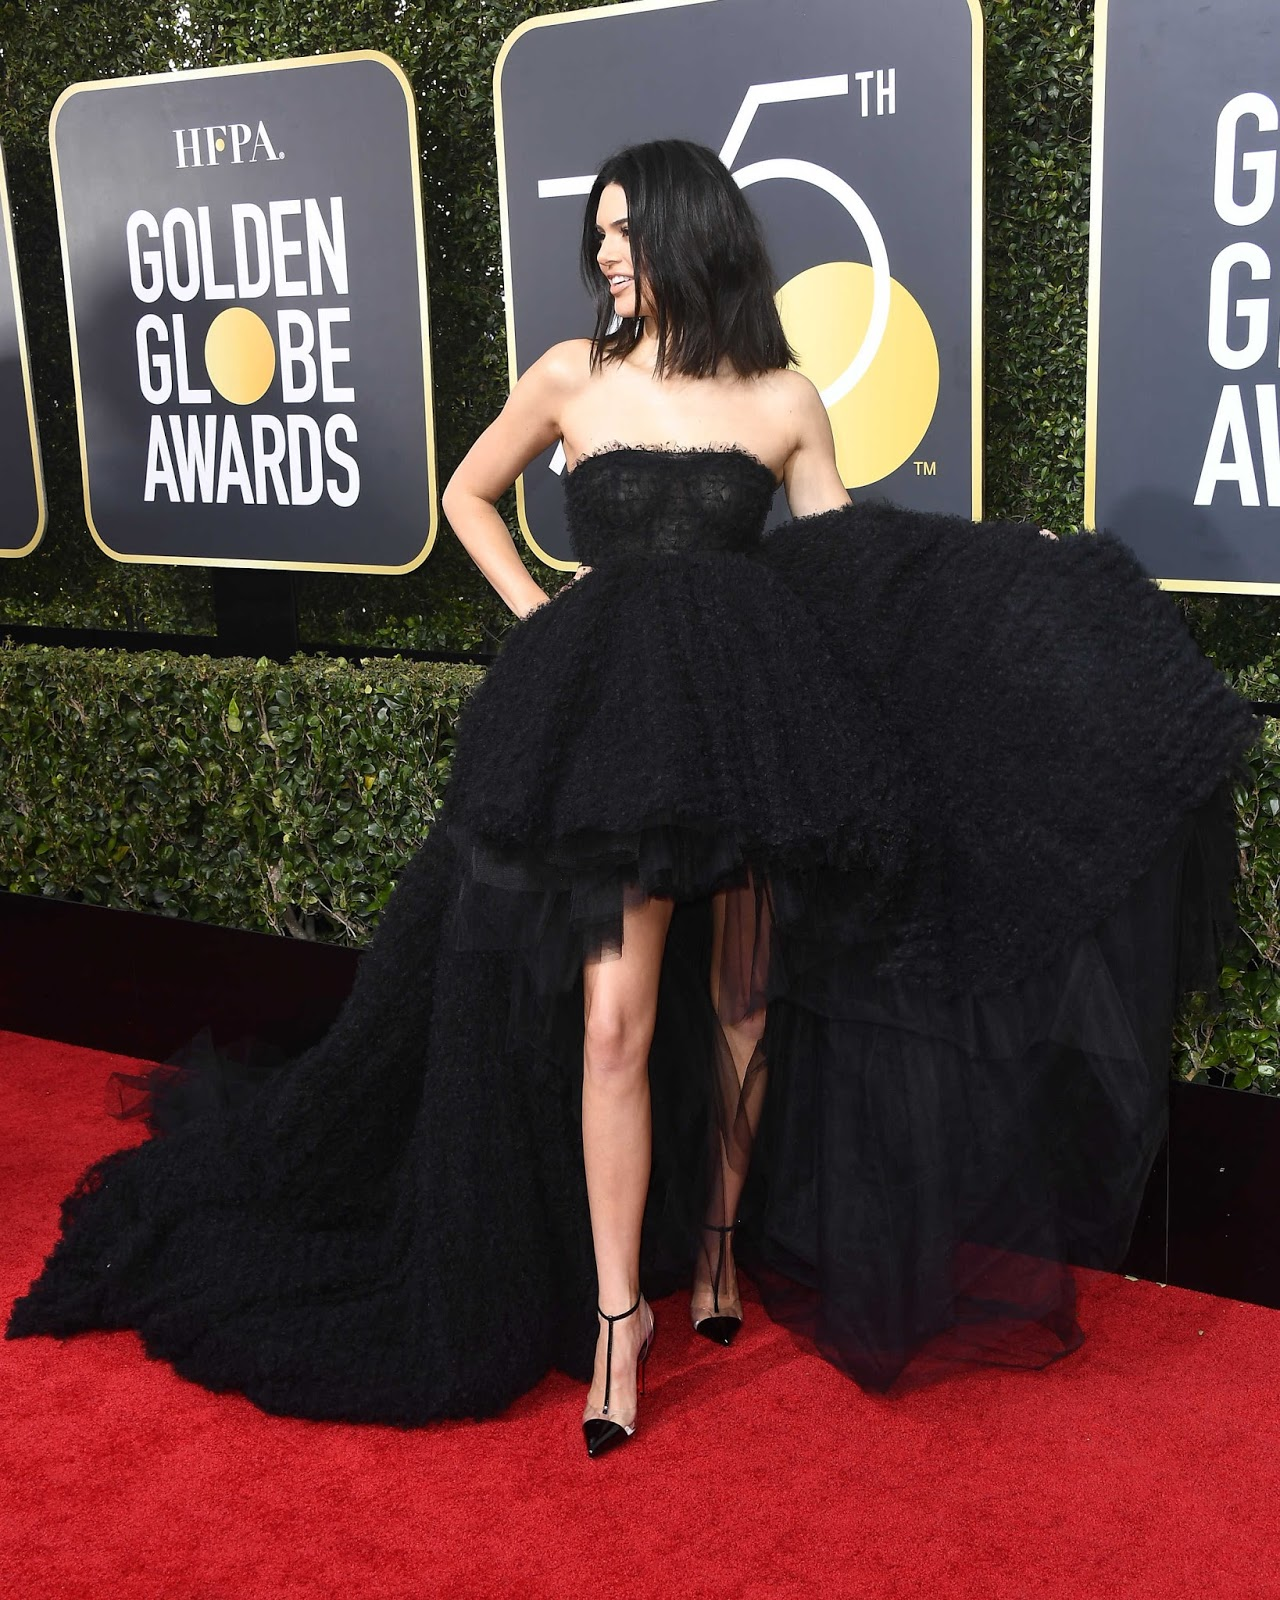 Kendall Jenner on the Red Cart at Golden Globe Awards